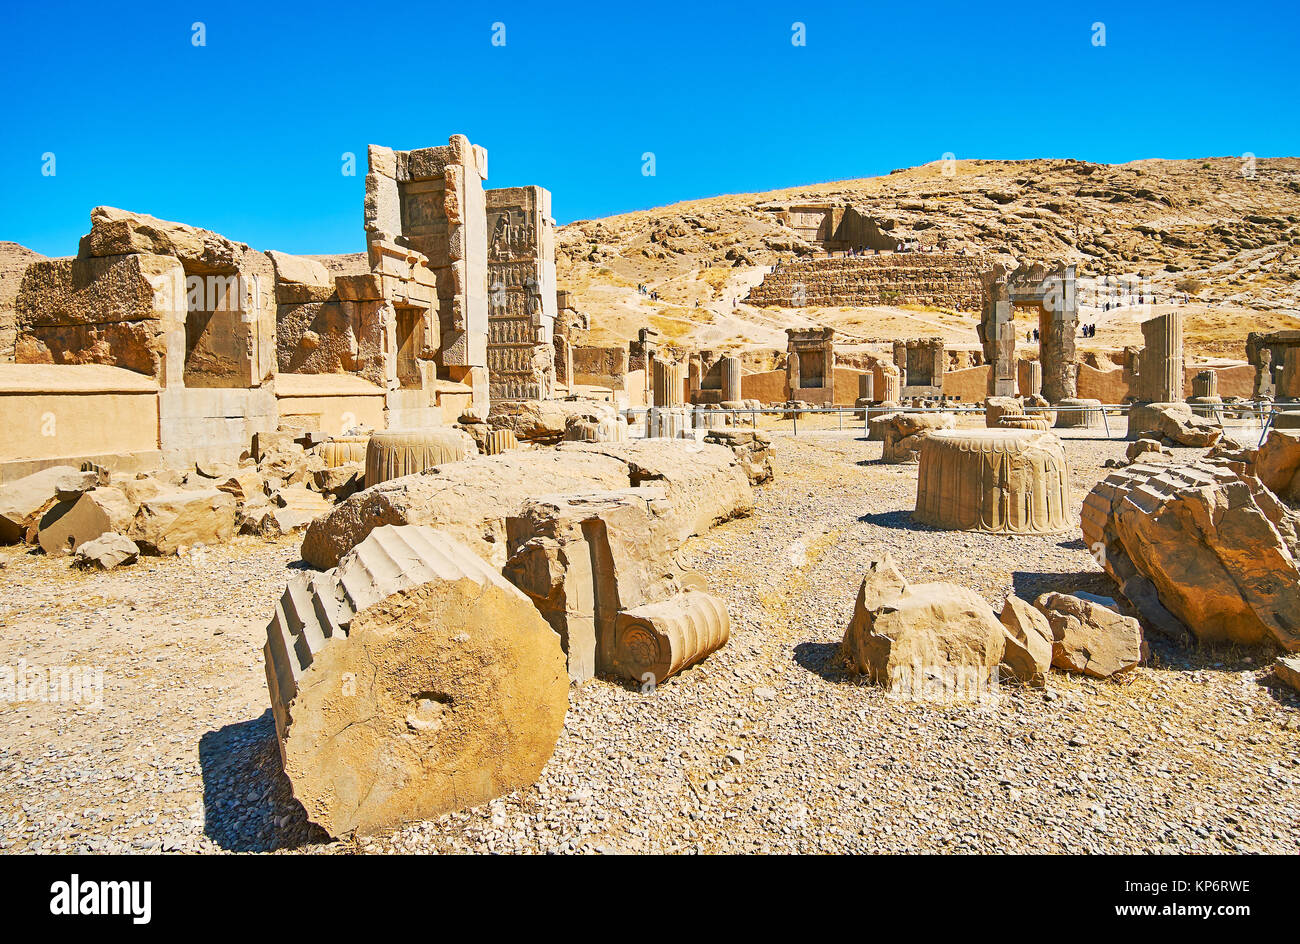 Persepolis complex is famous for preserved ancient palaces and tombs, Iran. - Stock Image